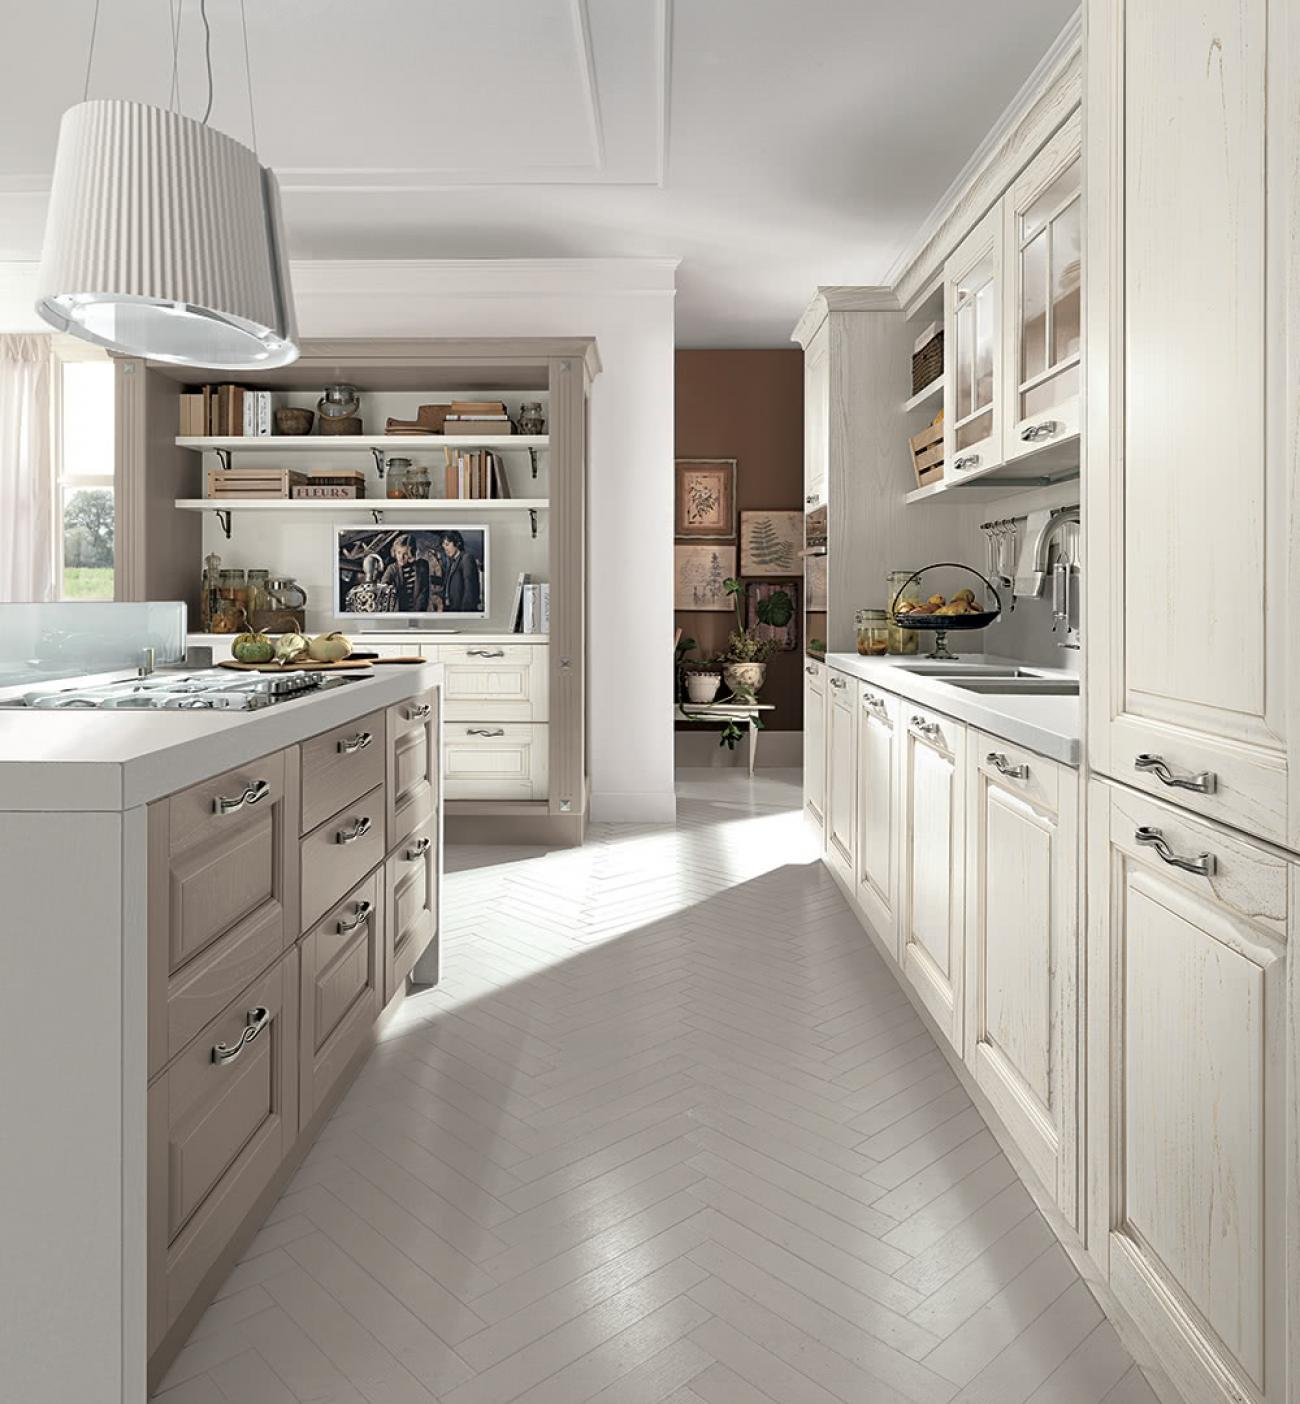 Classic Kitchens - Laura - 03